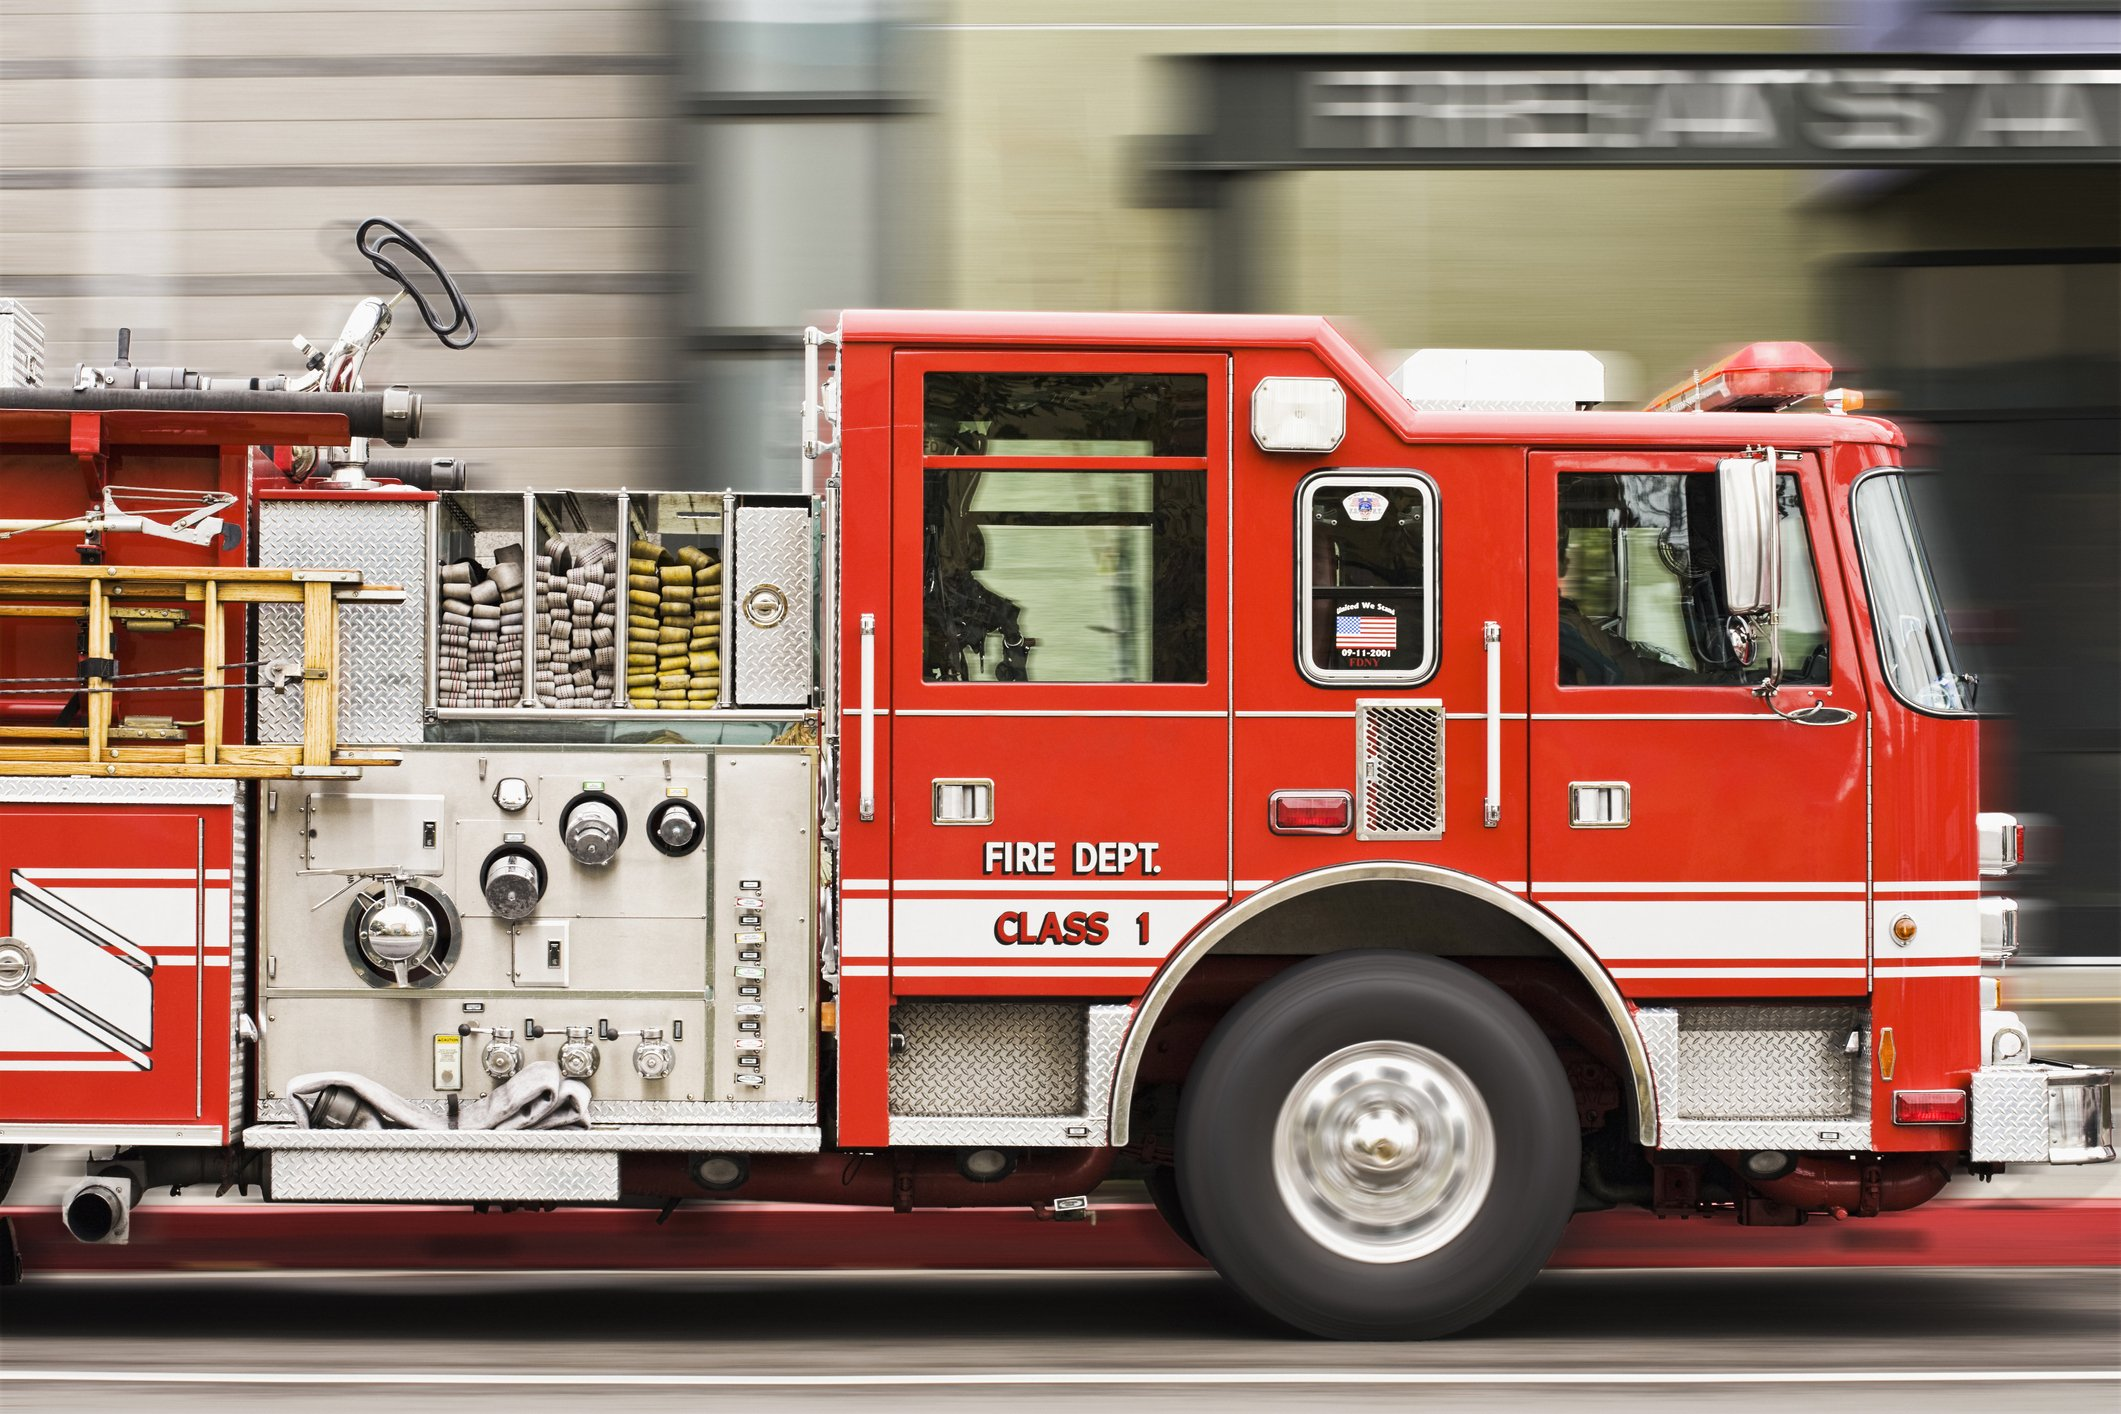 Blurred view of fire truck driving in city | Photo: Getty Images